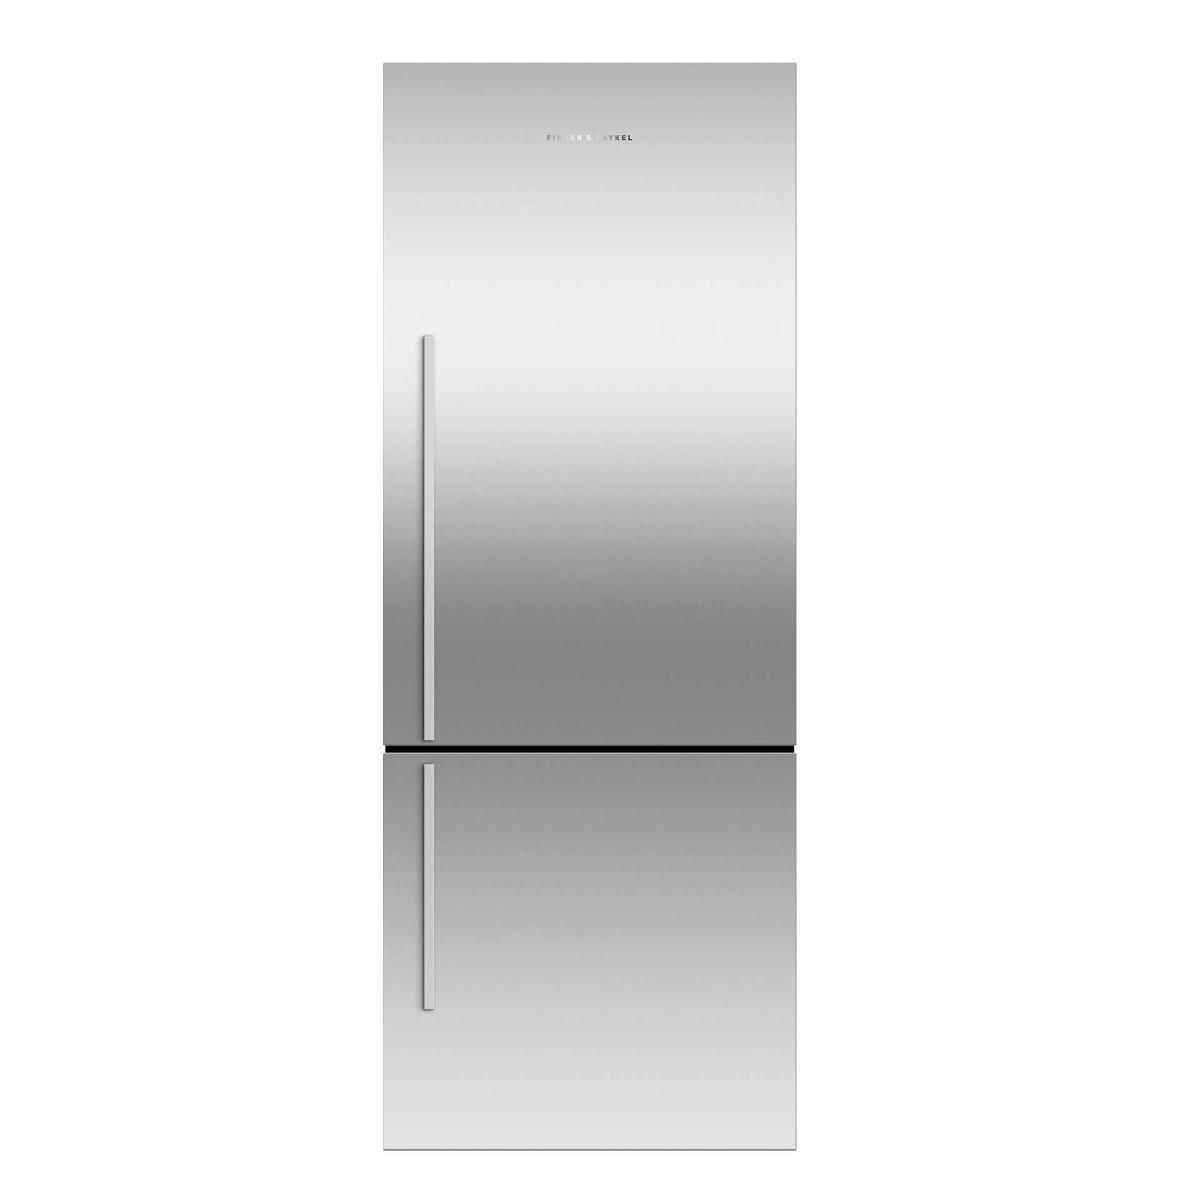 Fisher & Paykel Series 5 E402BRXFD4 Frost Free Fridge Freezer